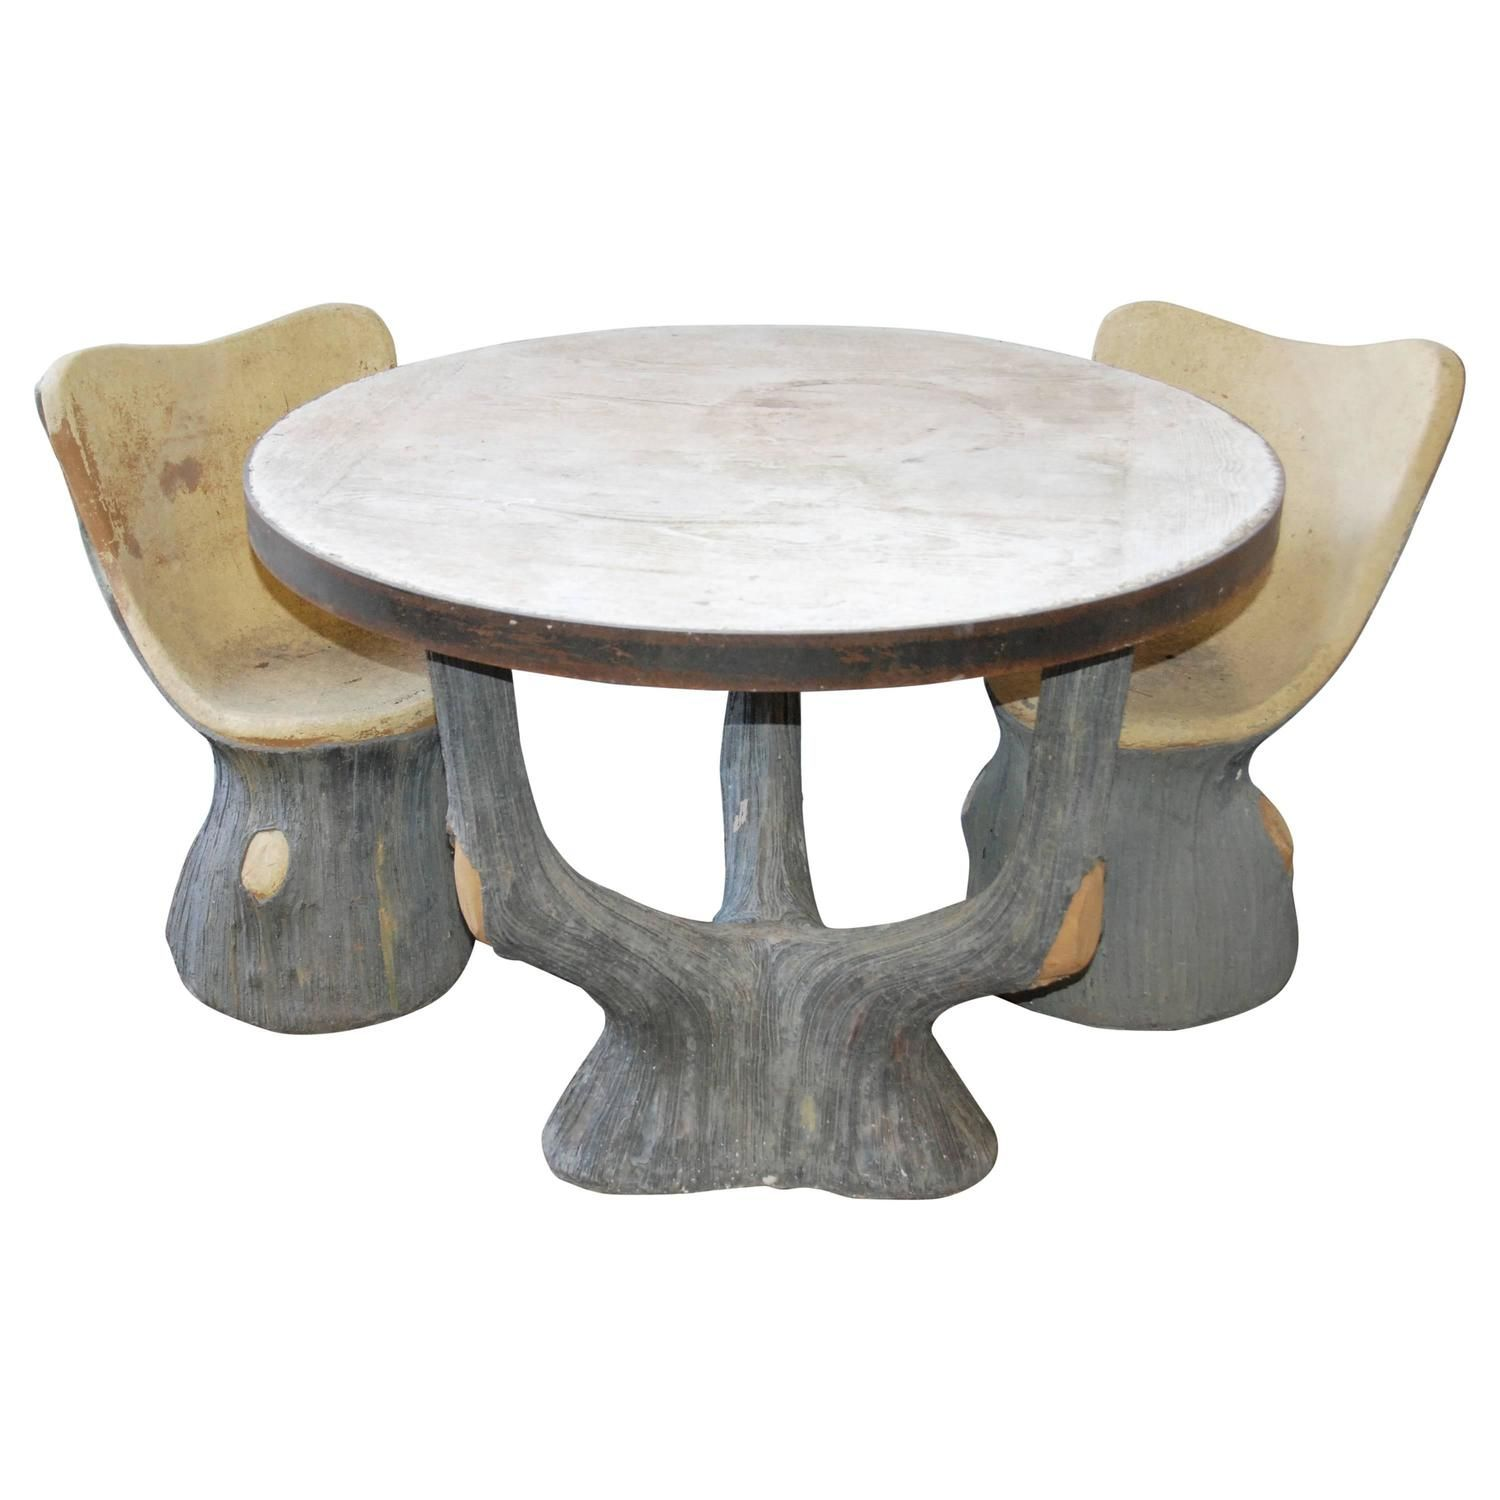 French Faux Bois Garden Table And Chairs